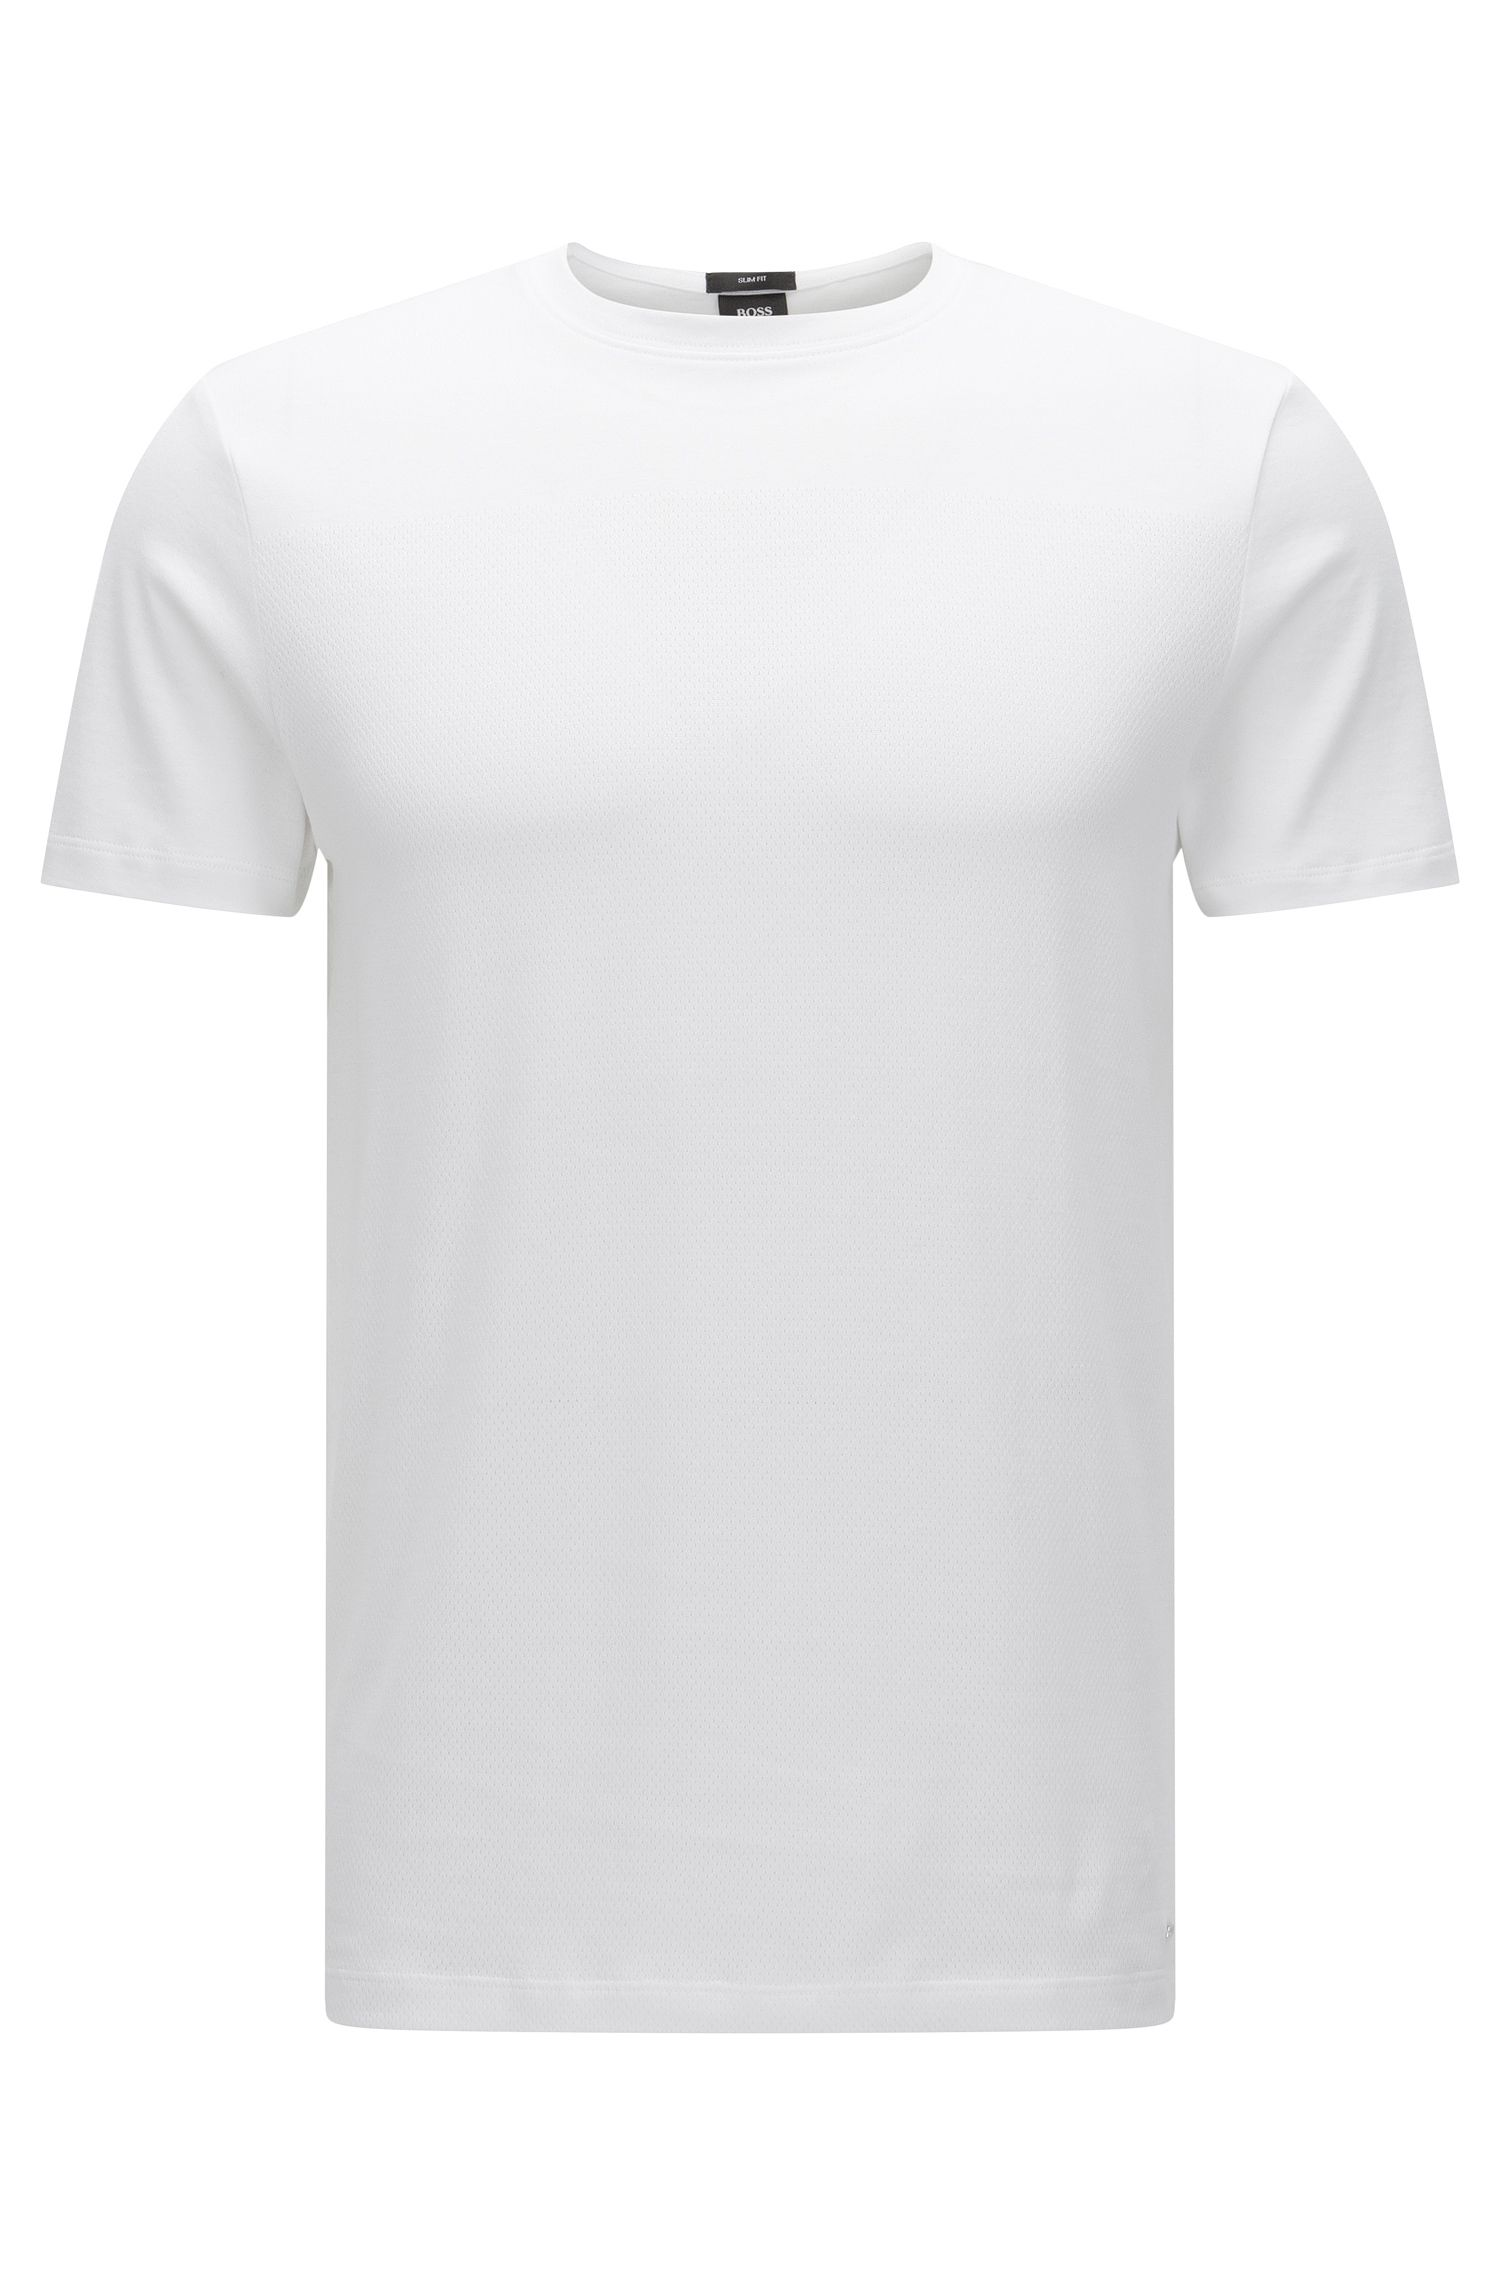 Cotton Mesh Texture T-Shirt | Tessler